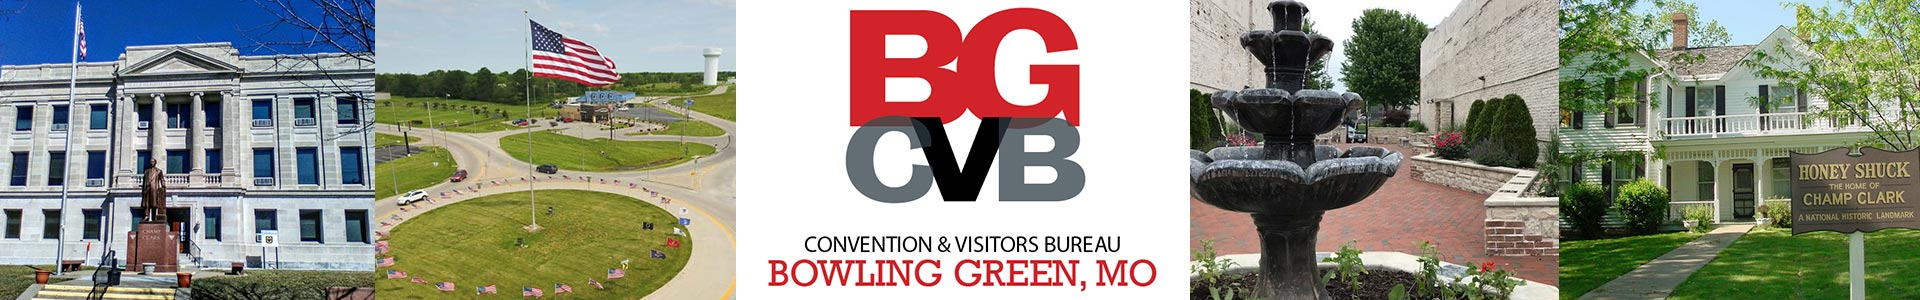 Bowling Green Convention & Visitors Bureau